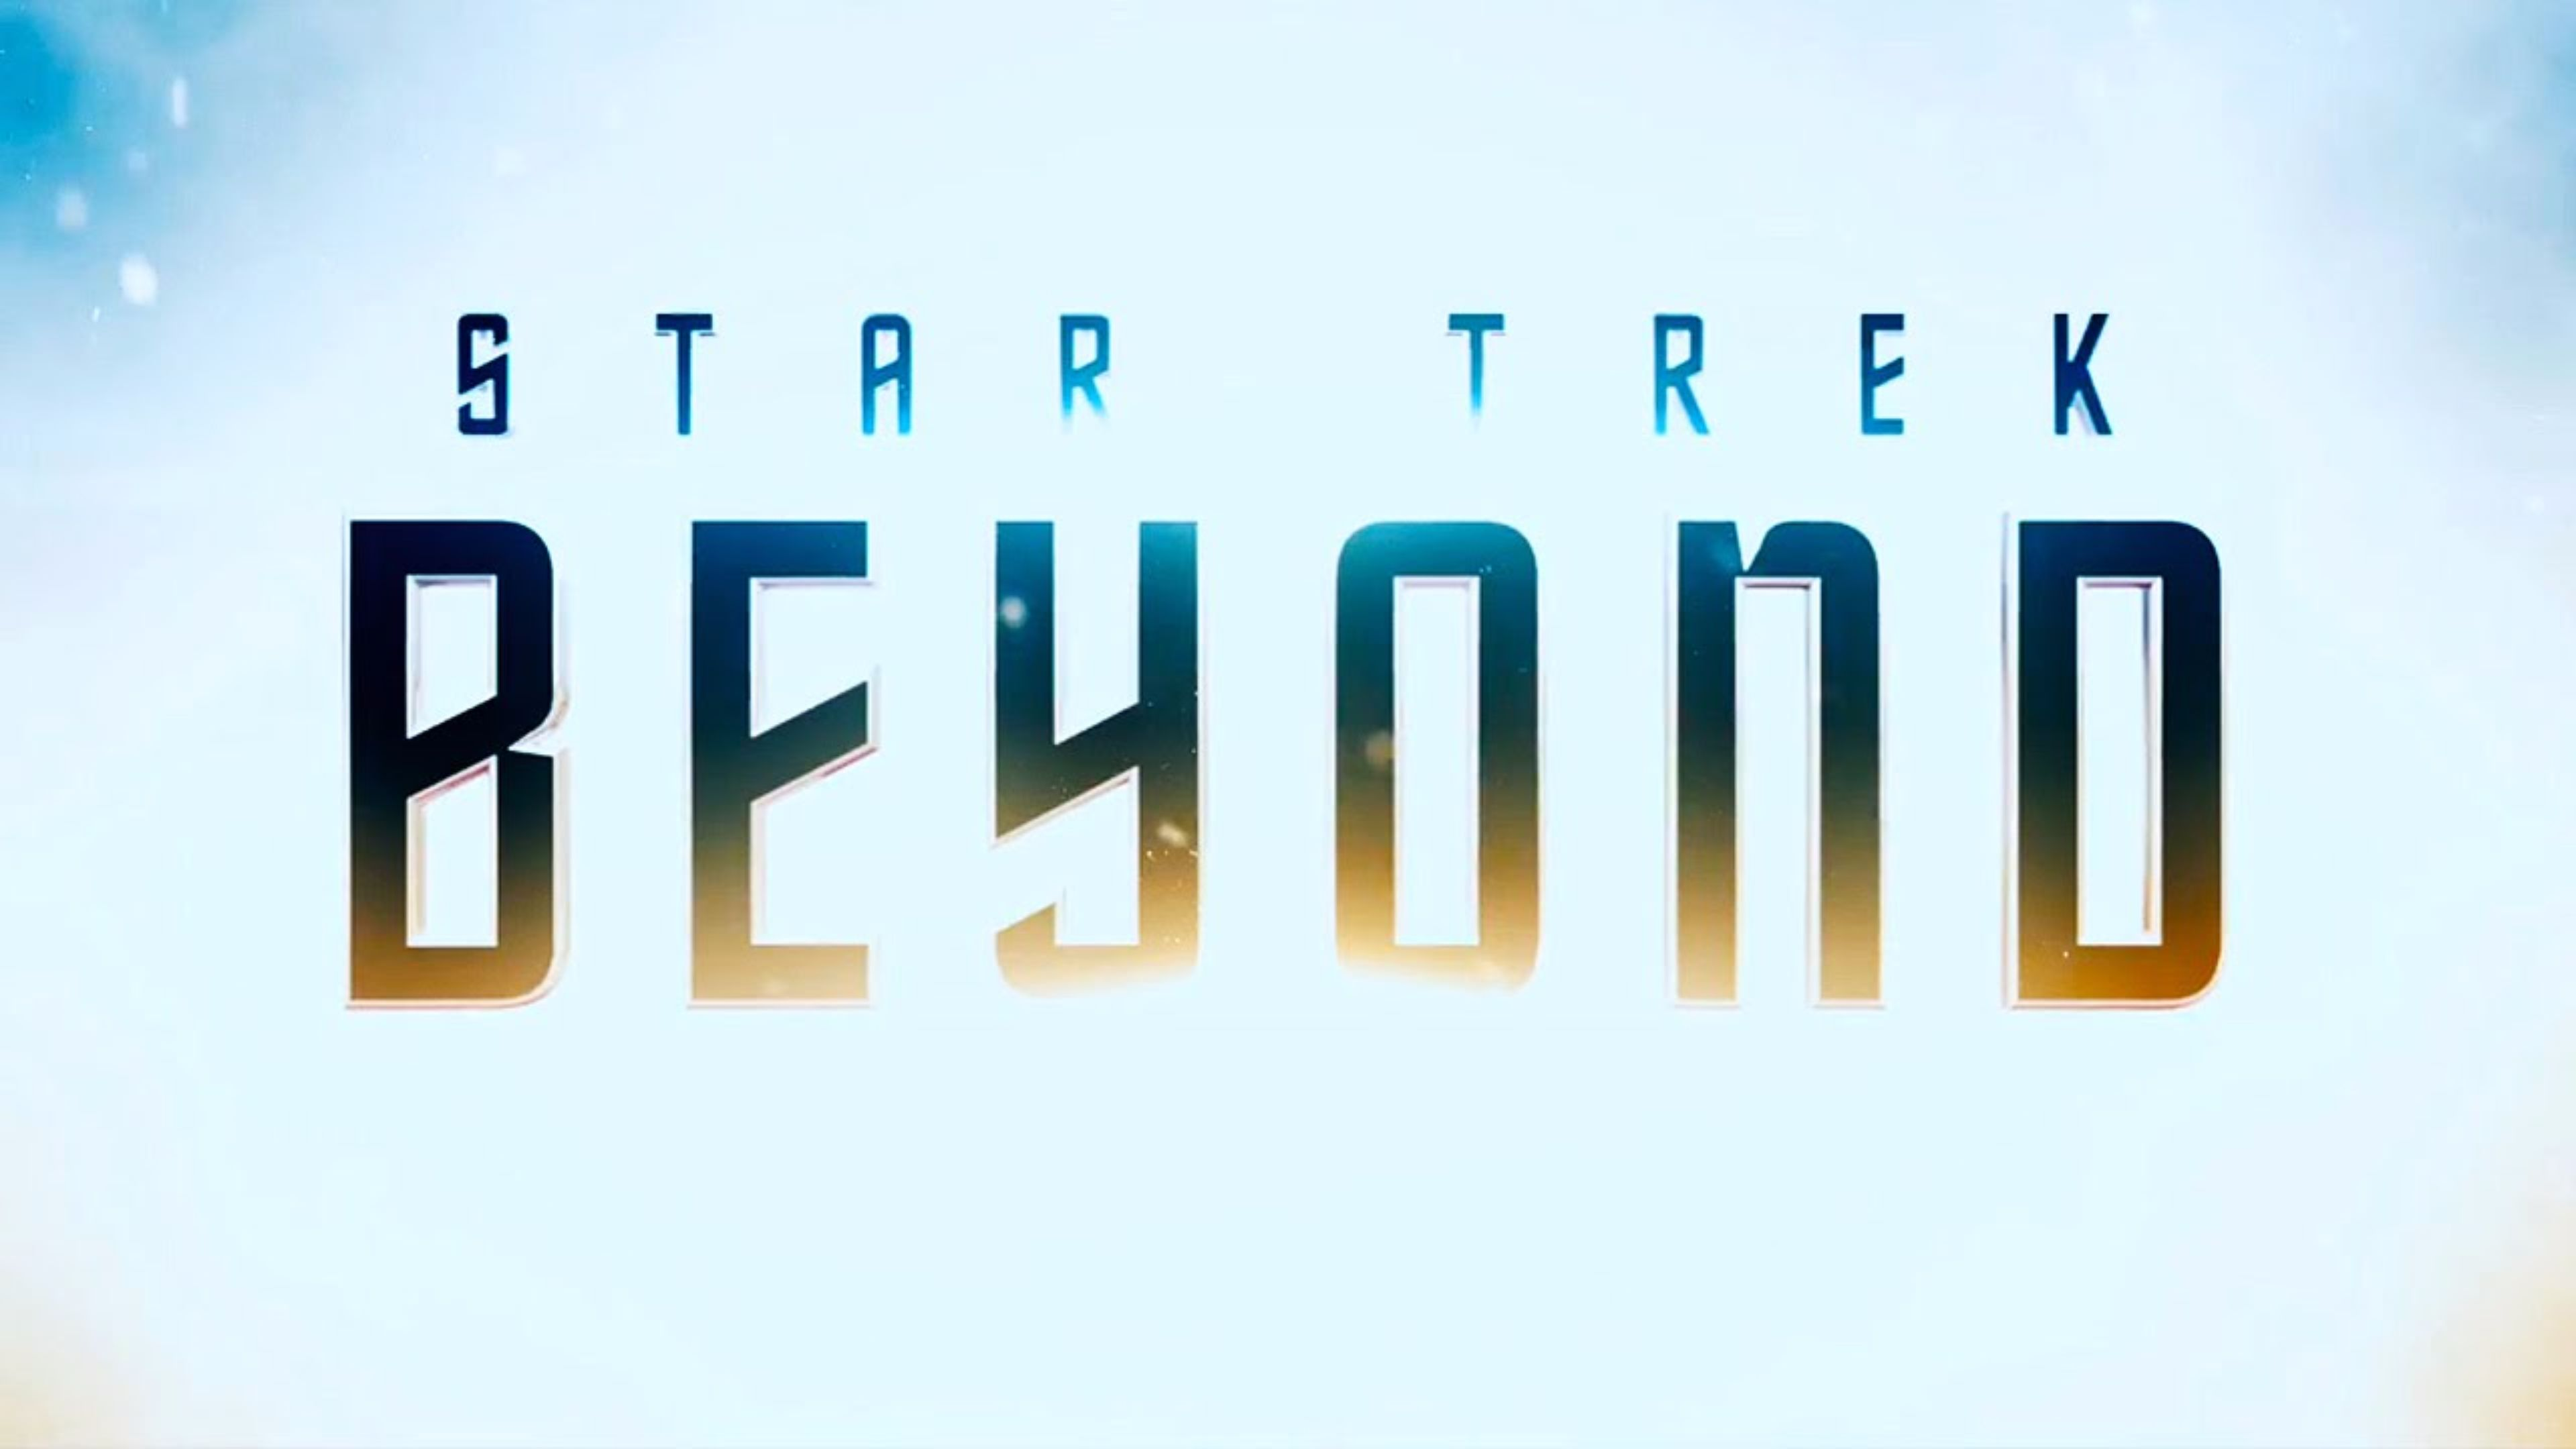 Star Trek Beyond widescreen wallpapers